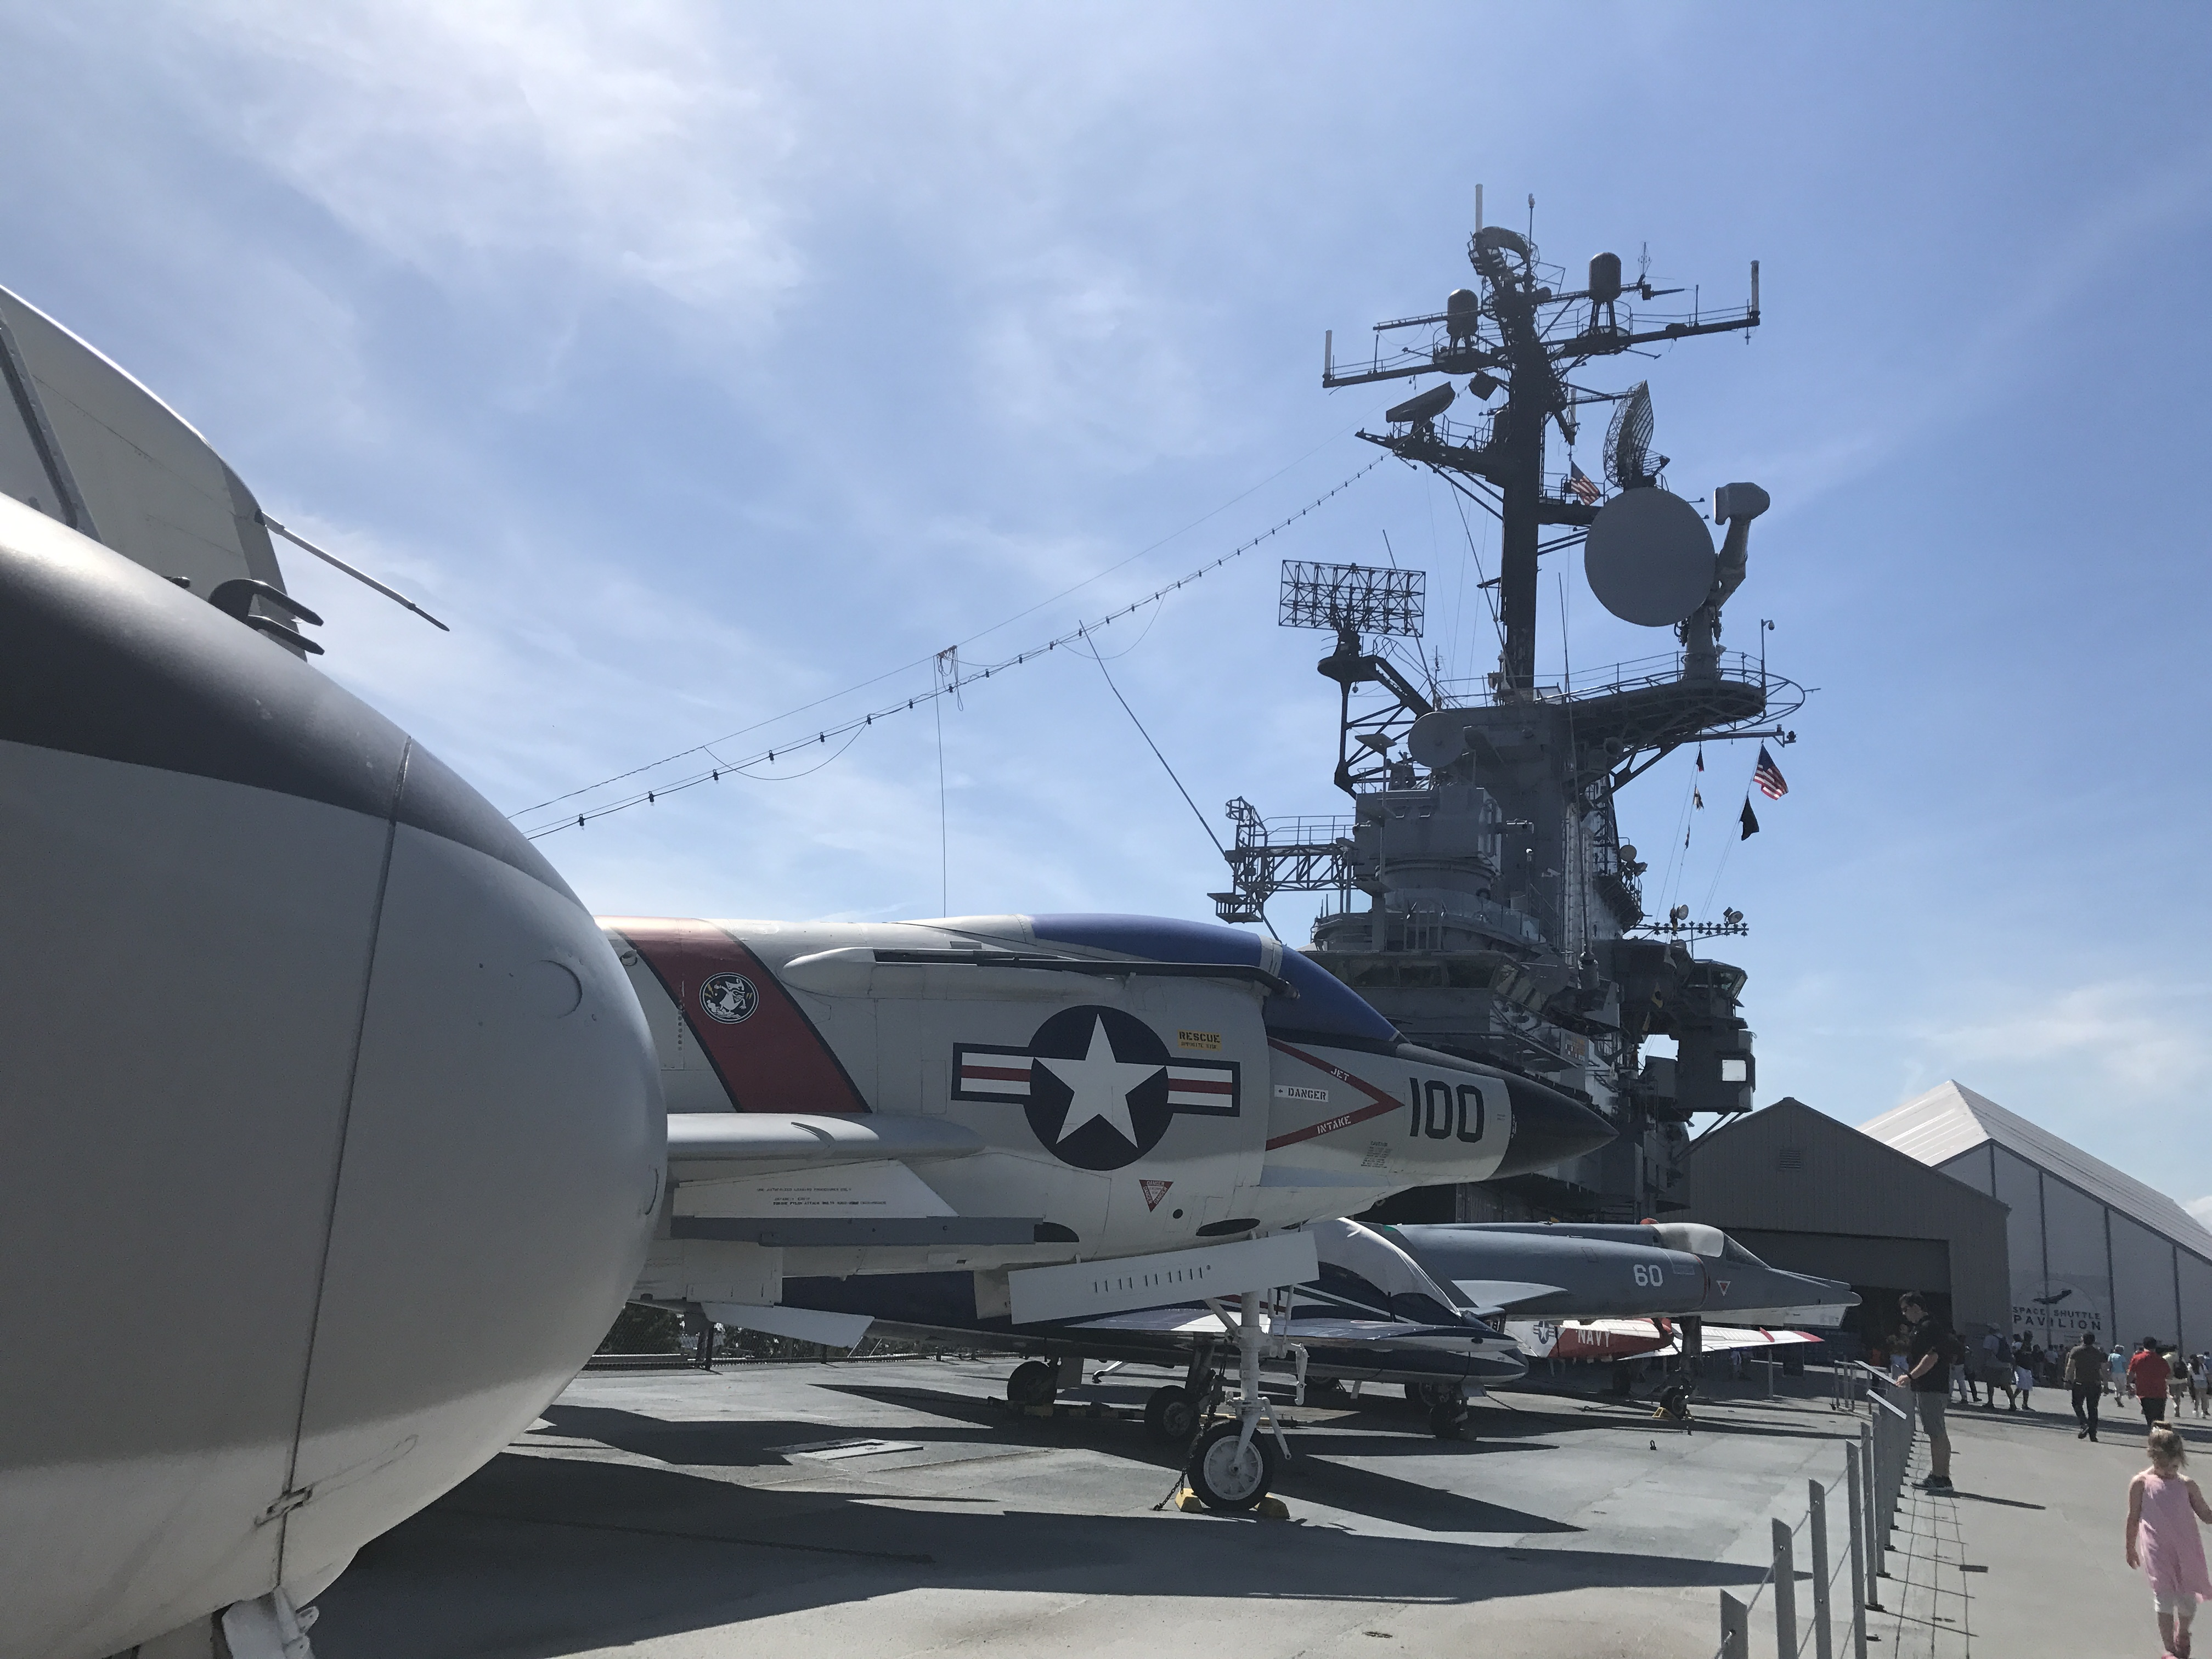 Intrepid space and air museum at Fleet Week in NYC in May 2019.